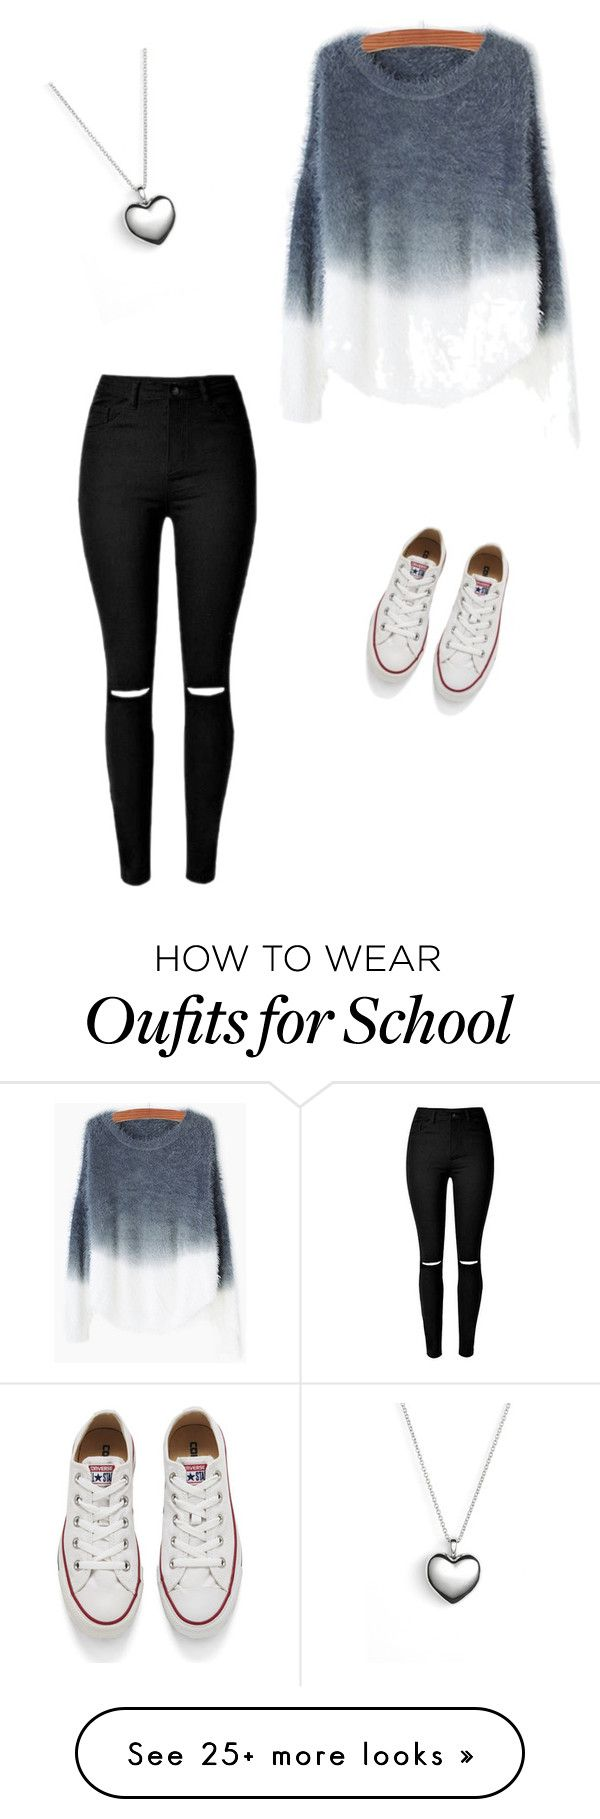 """""""School days"""" by chloeraeb on Polyvore featuring Converse, Pandora, women's clothing, women, female, woman, misses and juniors"""